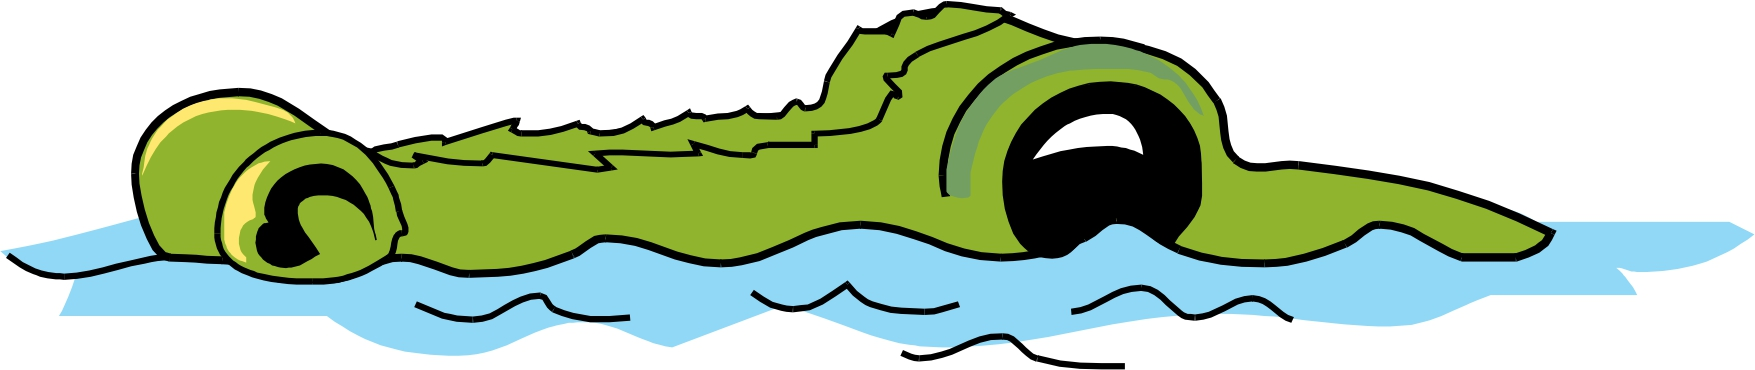 Alligator in water clipart vector black and white Free Pictures Of Cartoon Alligators, Download Free Clip Art, Free ... vector black and white